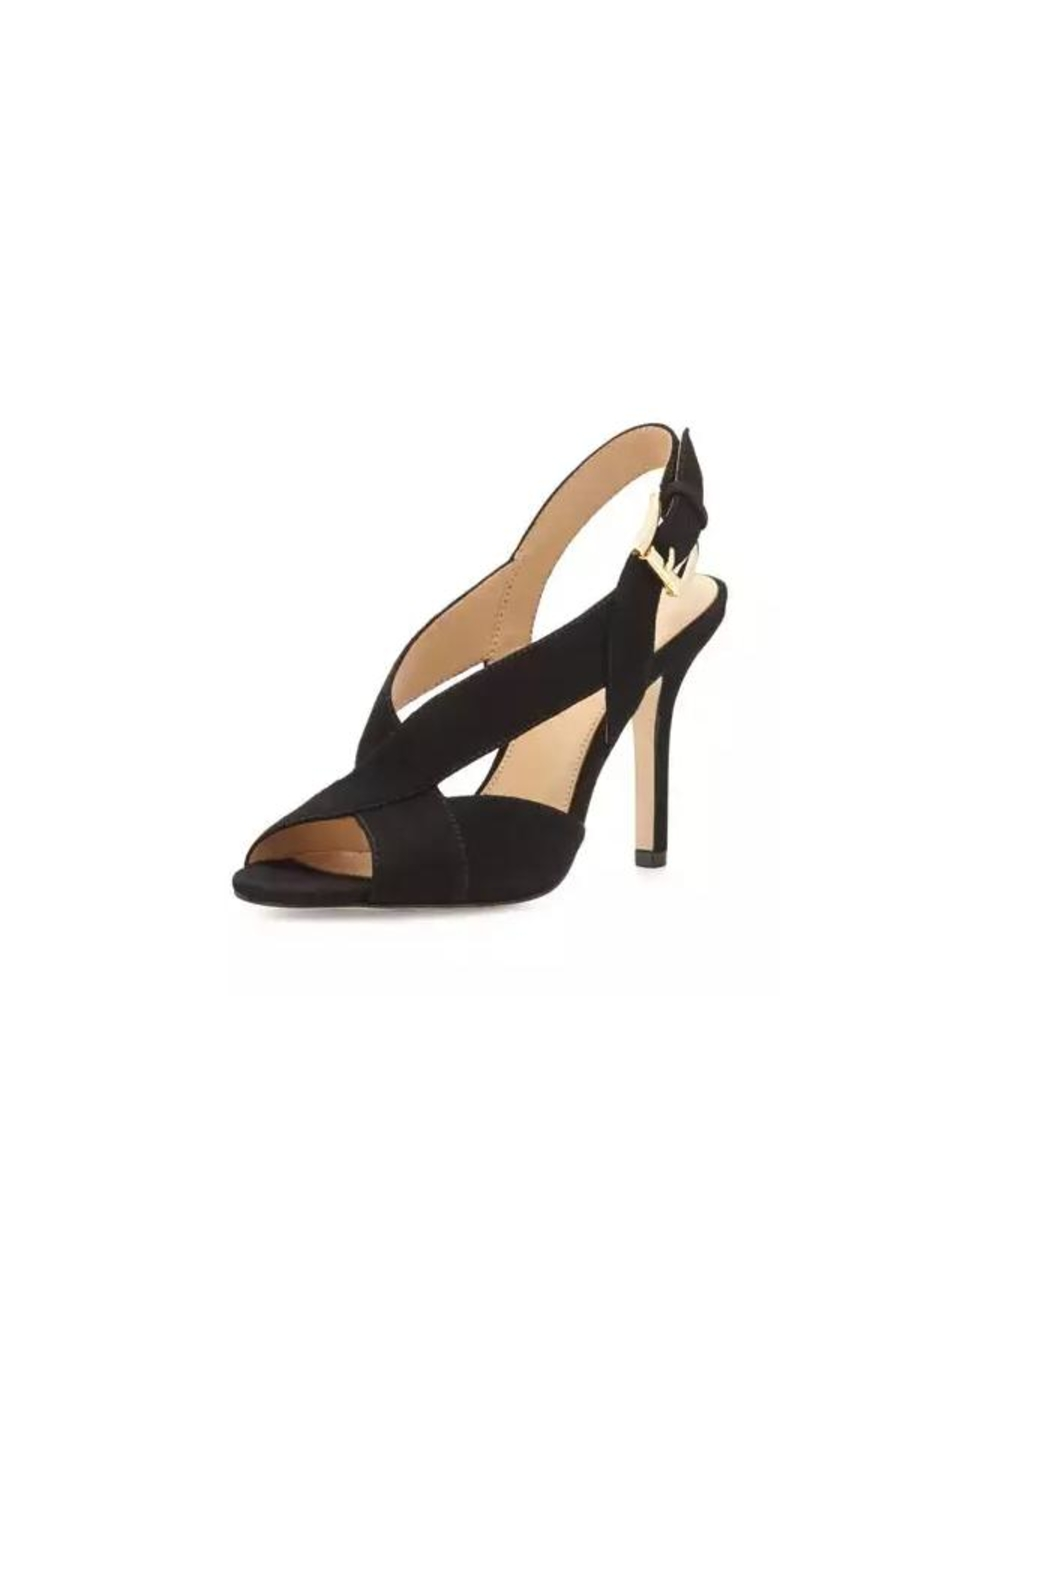 702ce0415b9 Michael Kors Black Suede Heels from Canada by Moxxi — Shoptiques